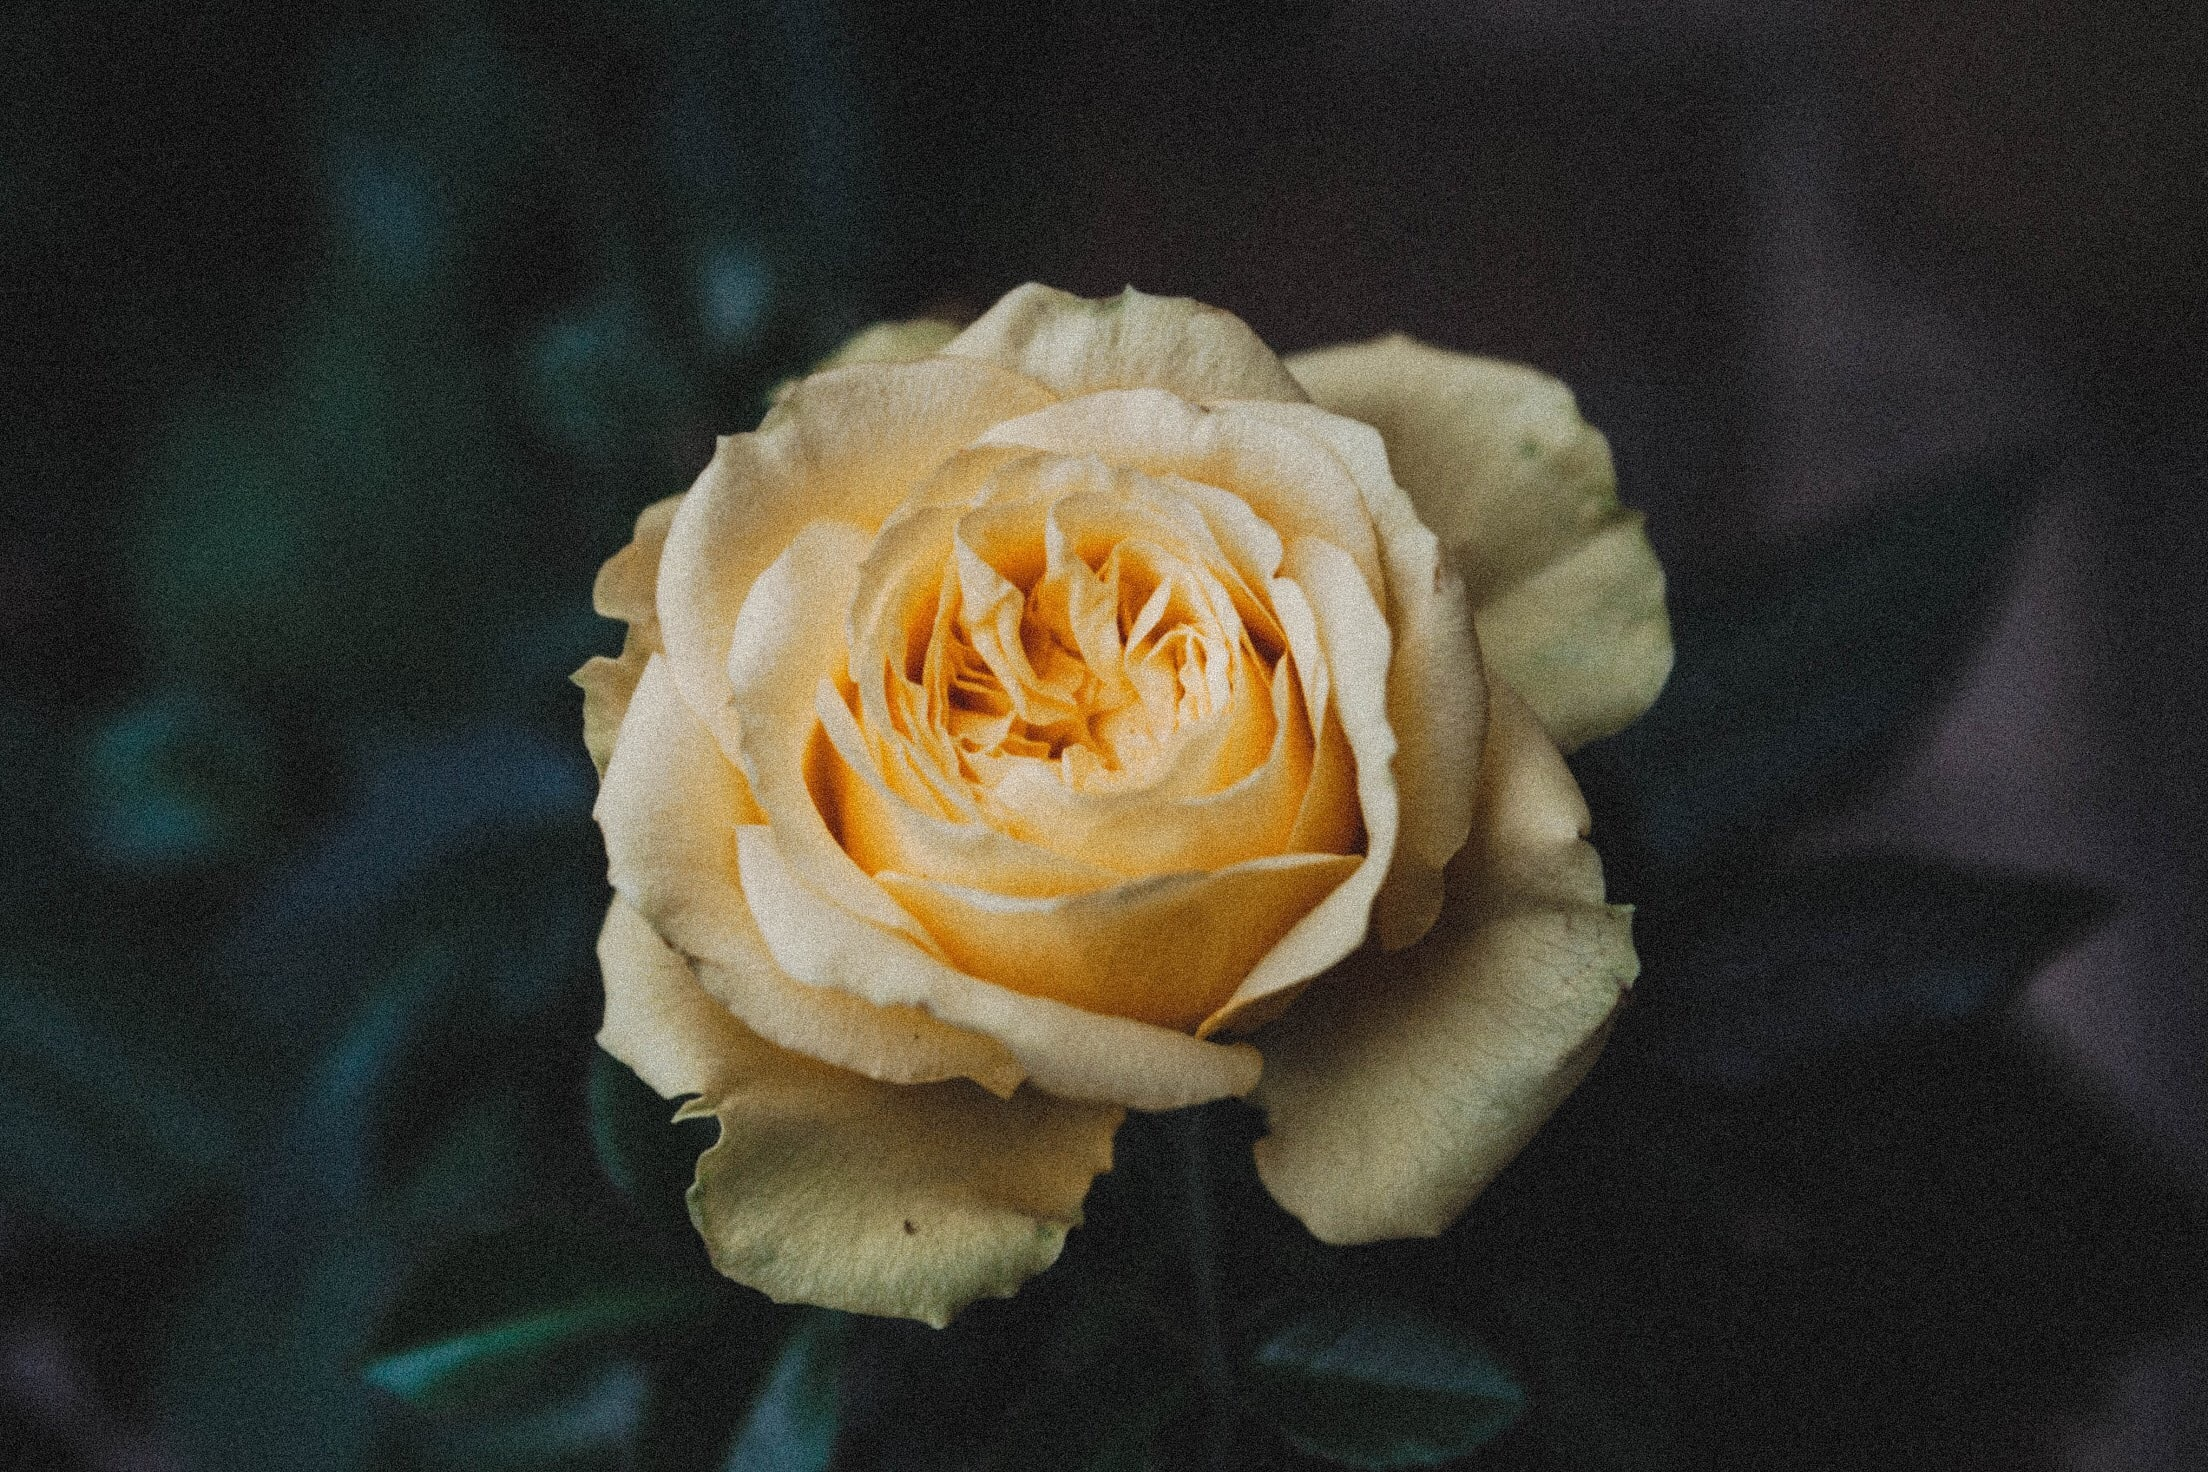 micro focus photo of a yellow rose